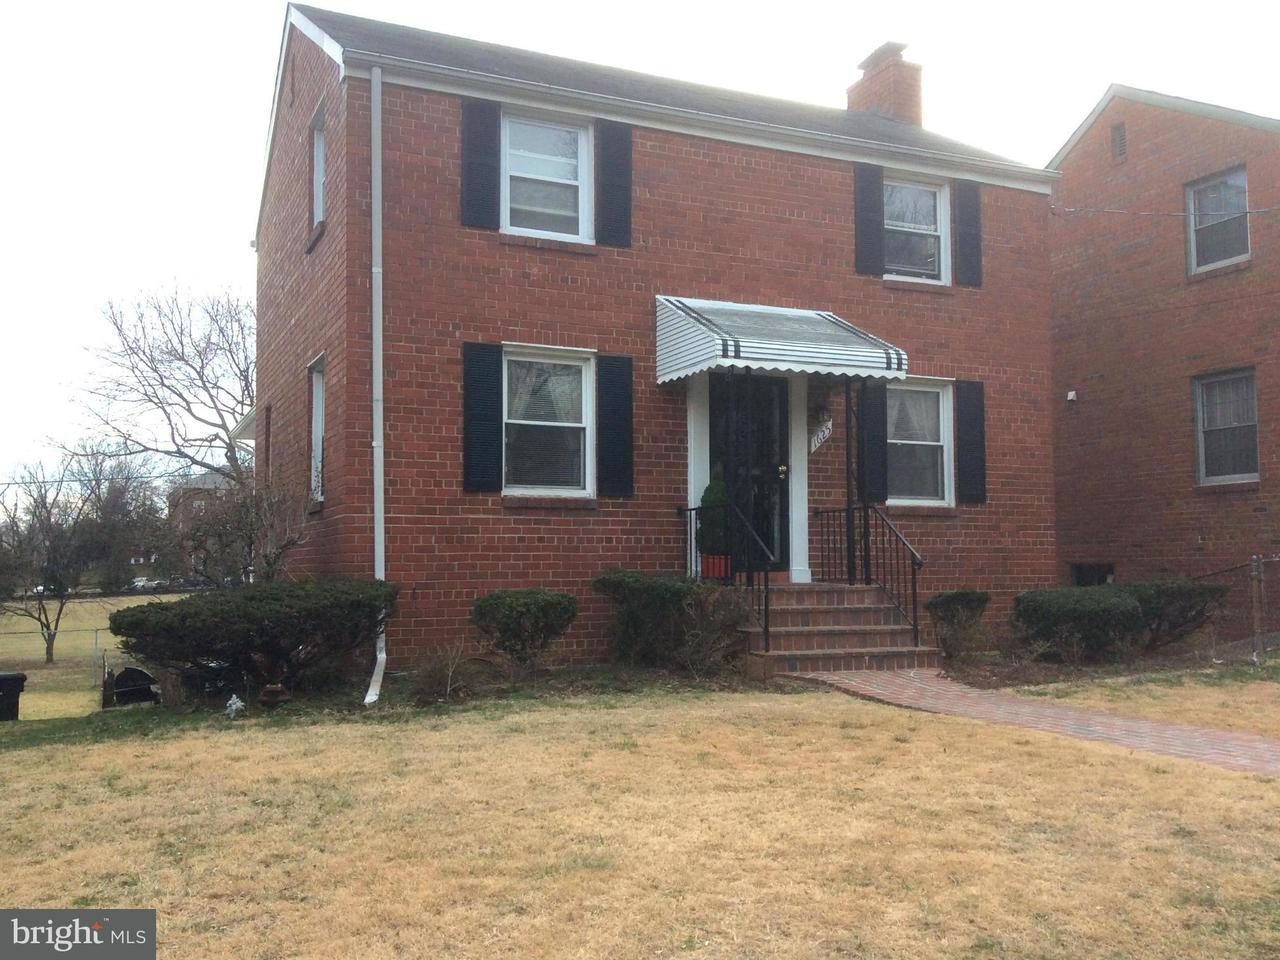 Additional photo for property listing at 1625 BUCHANAN ST NE 1625 BUCHANAN ST NE Washington, 컬럼비아주 20017 미국